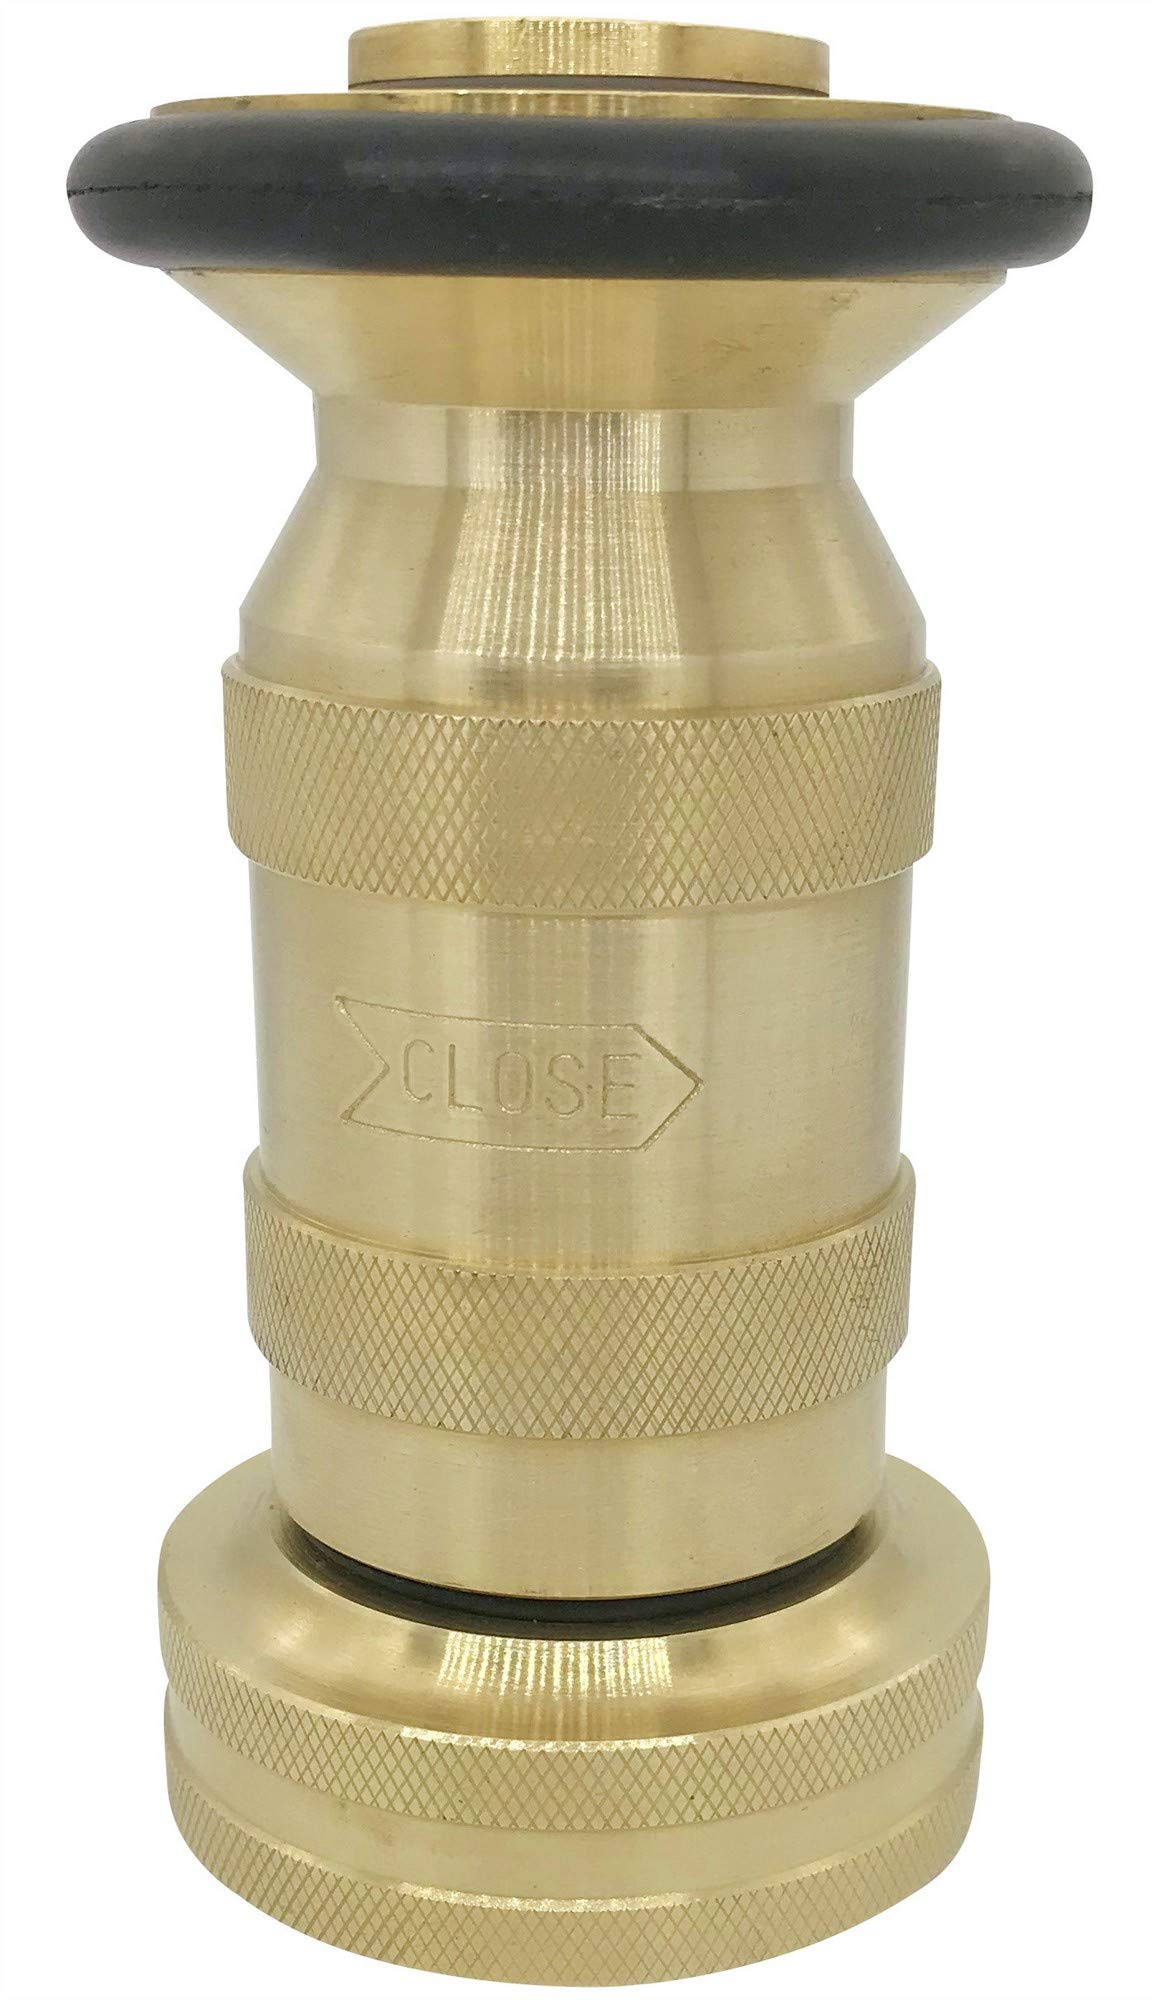 Fire Hose Nozzle 100 psi 1-1/2'' NST/NH 85 gpm Brass Fire Equipment Heavy Duty Industrial Jet Fog Spray Nozzle FHSN06B